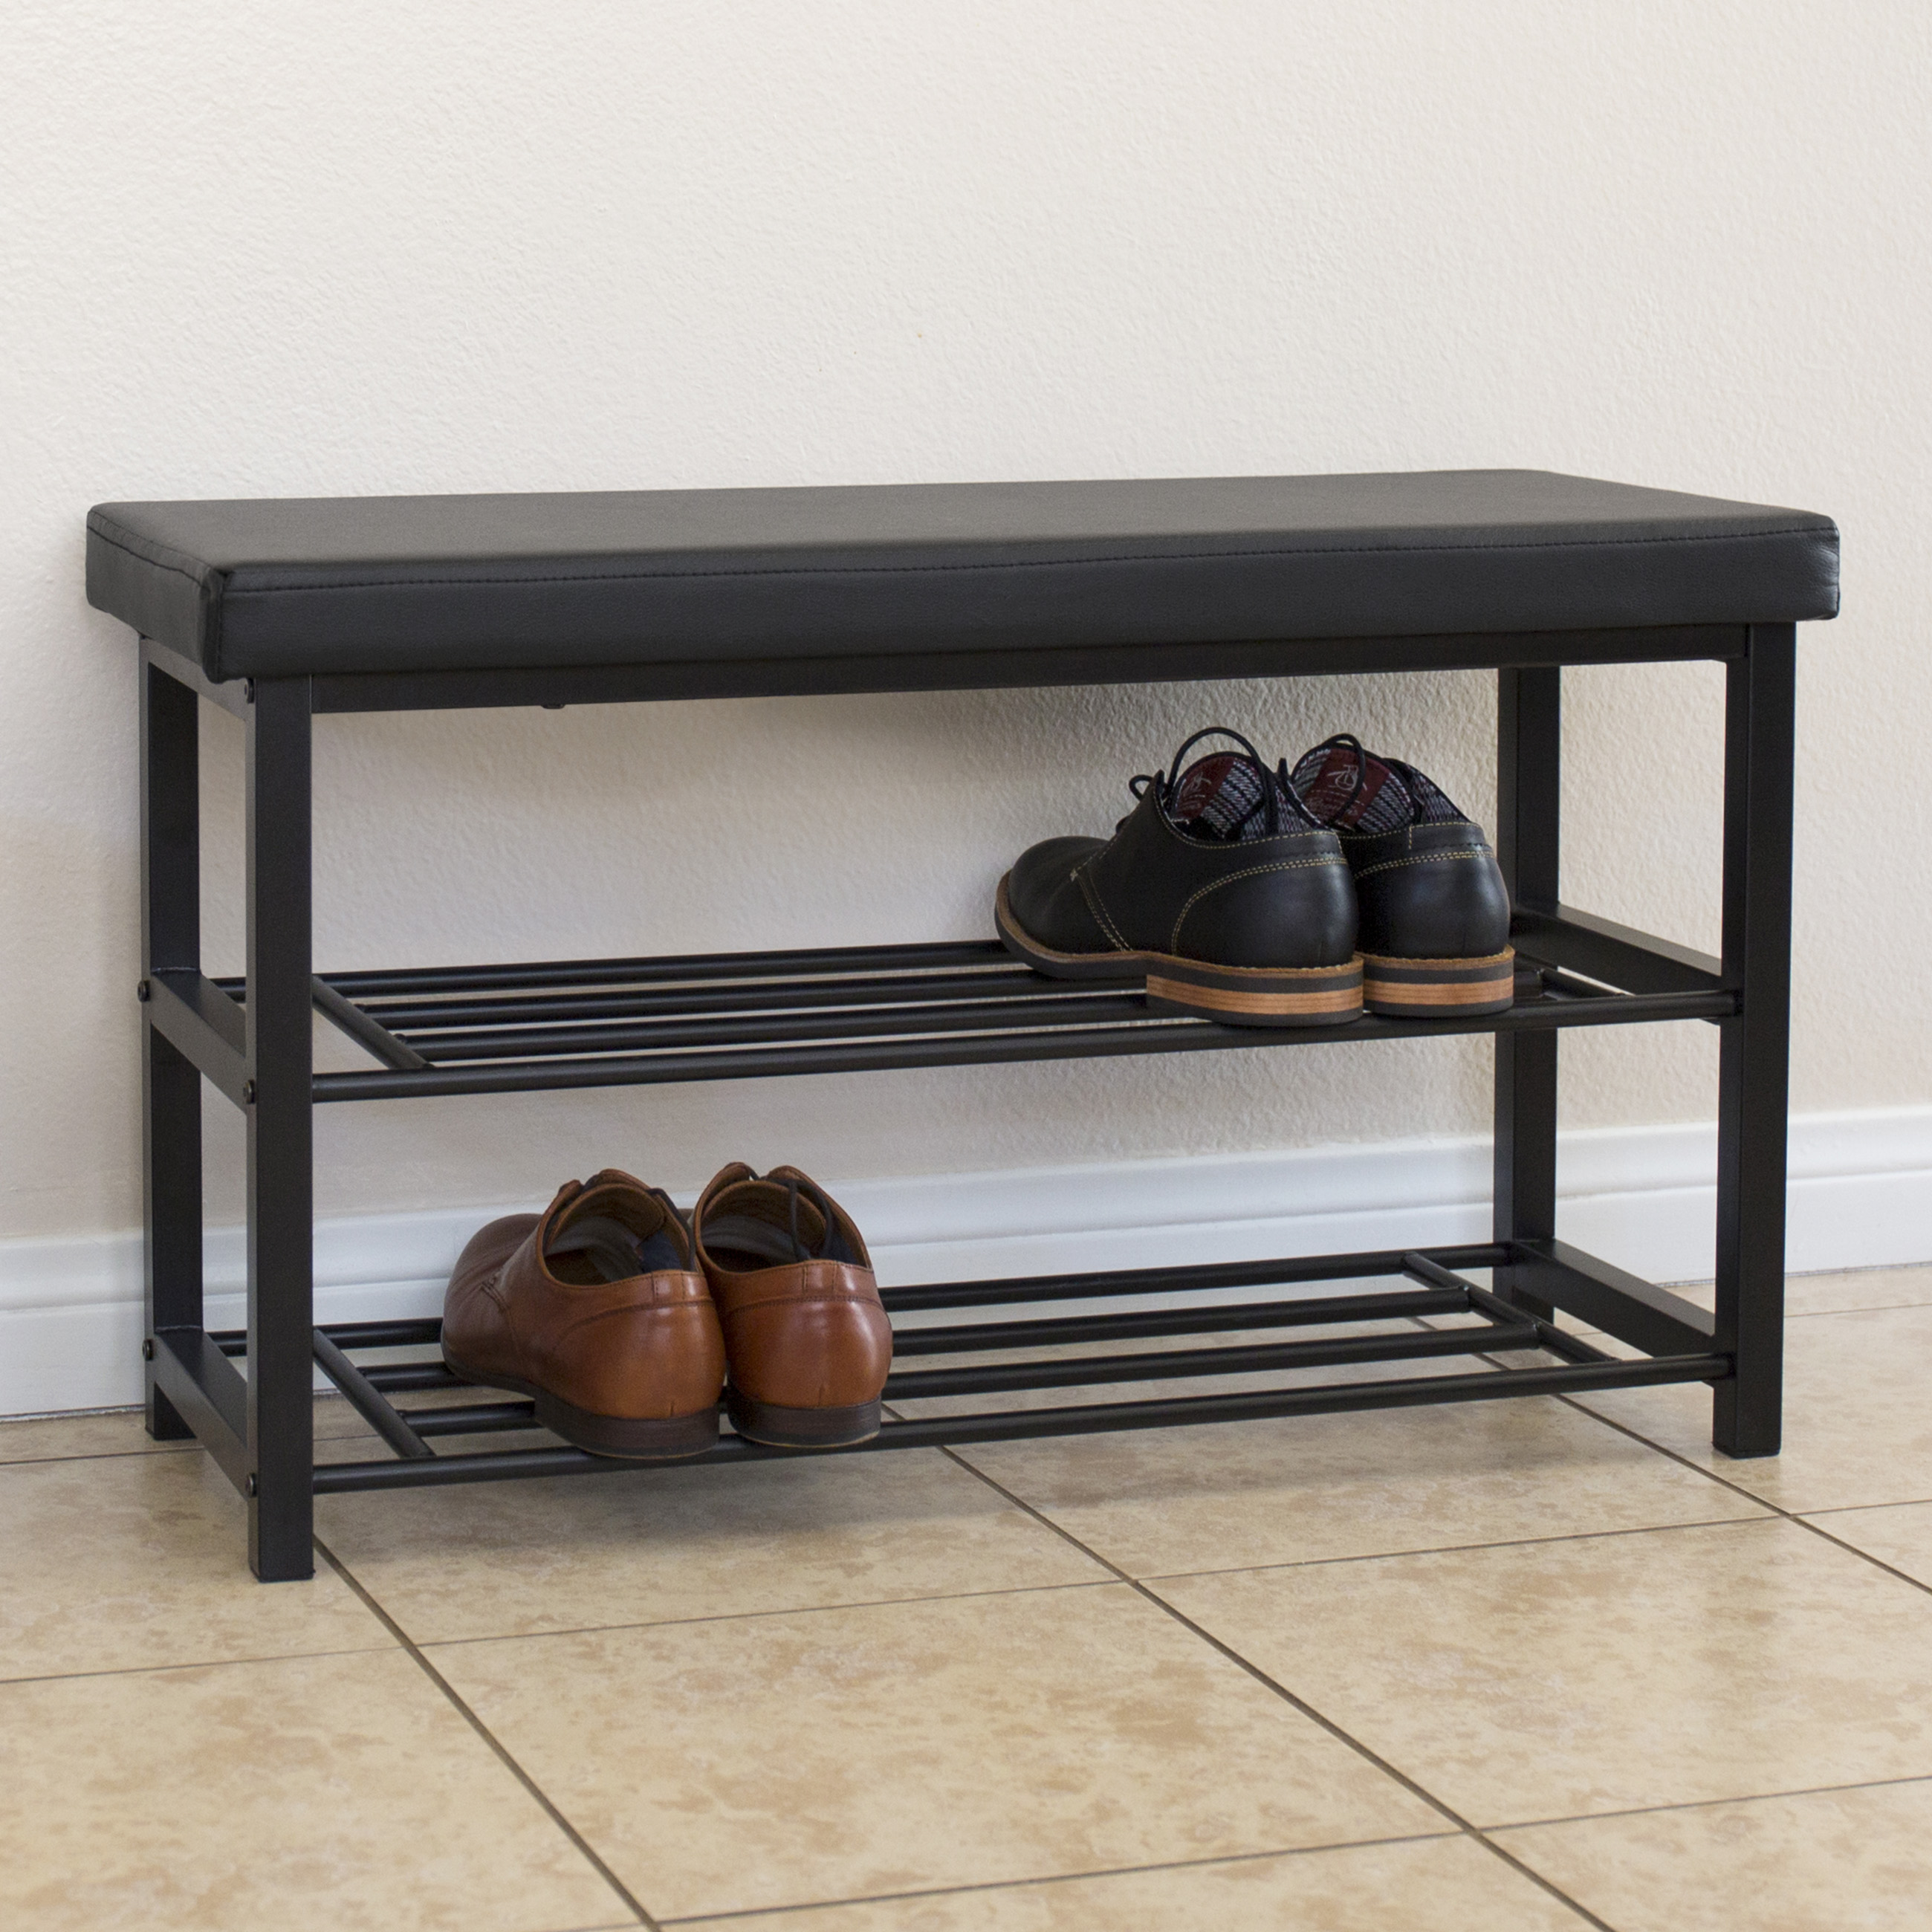 Best Choice Products 2-Tier 220lb Capacity Steel Metal Storage Bench Shoe Storage Organization Rack for Home, Entryway, Hallway, Bedroom w/ Leather Top - Black